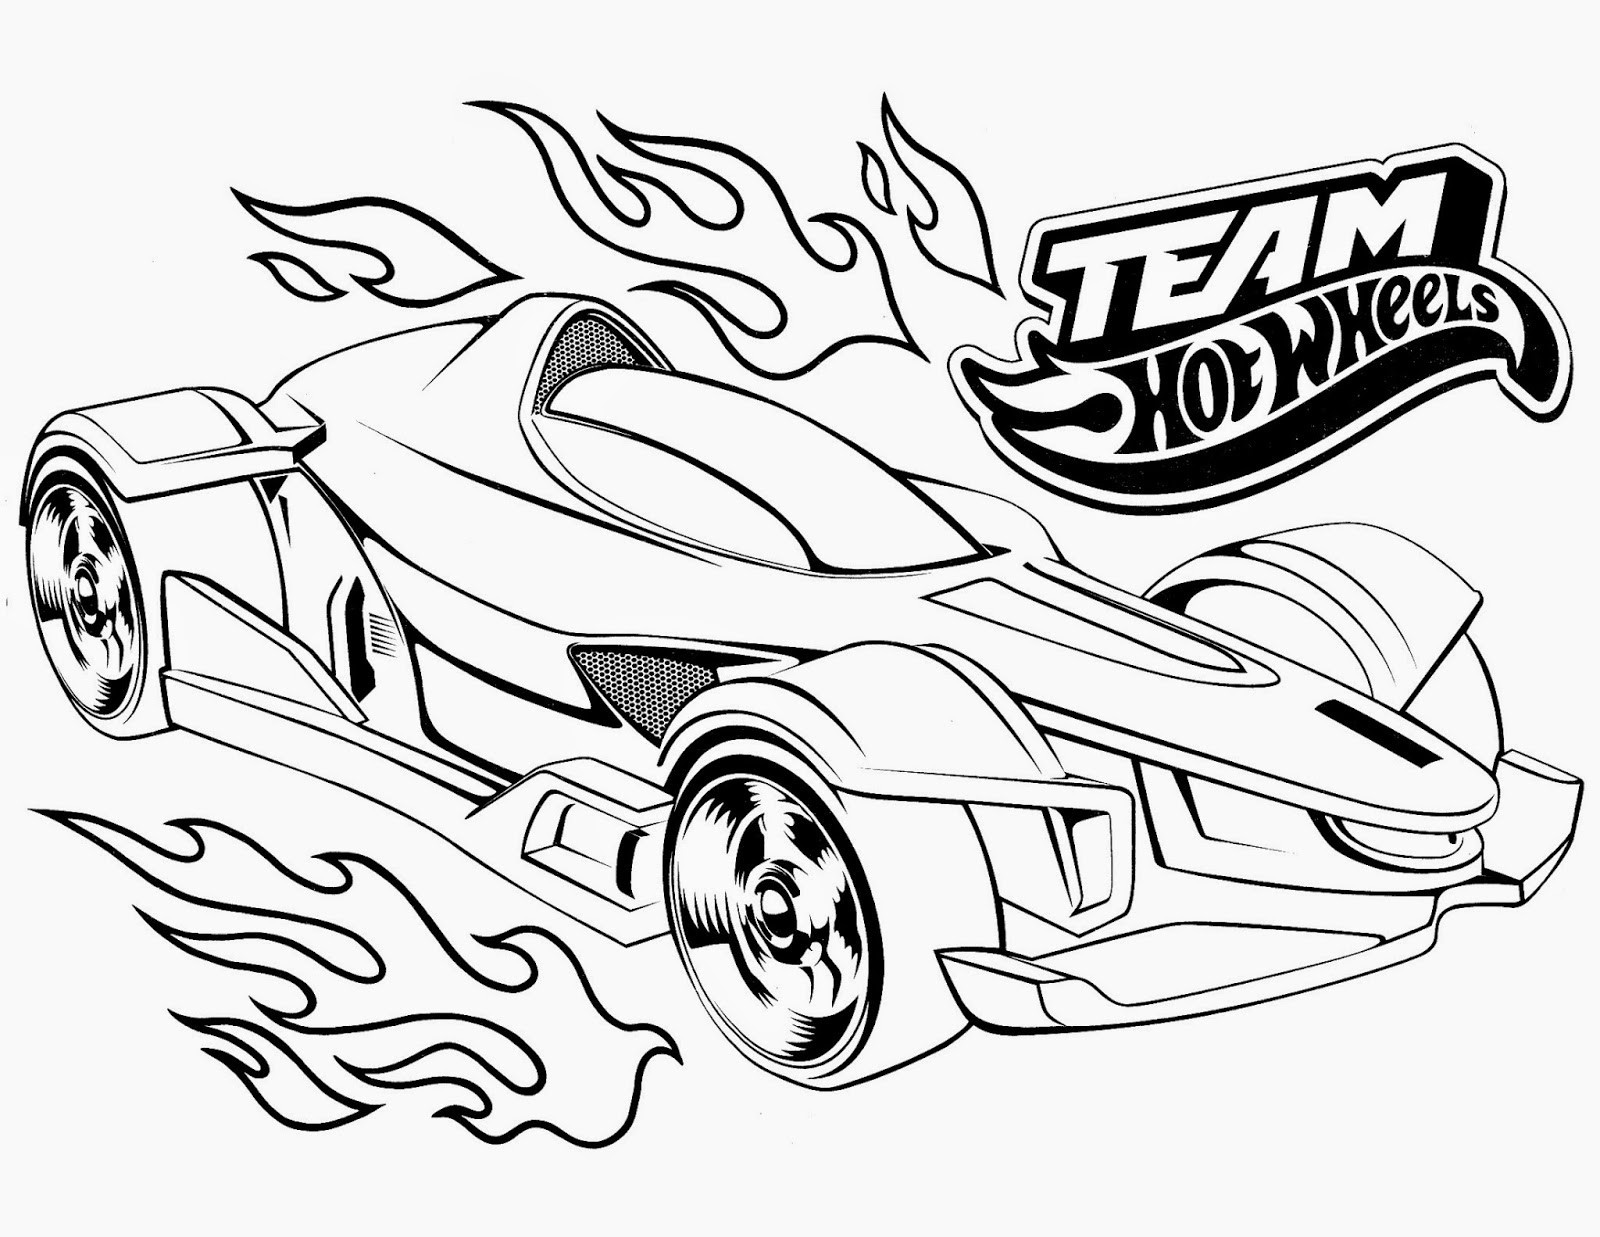 Ausmalbilder Fast And Furious  Fast And Furious Drawing at GetDrawings